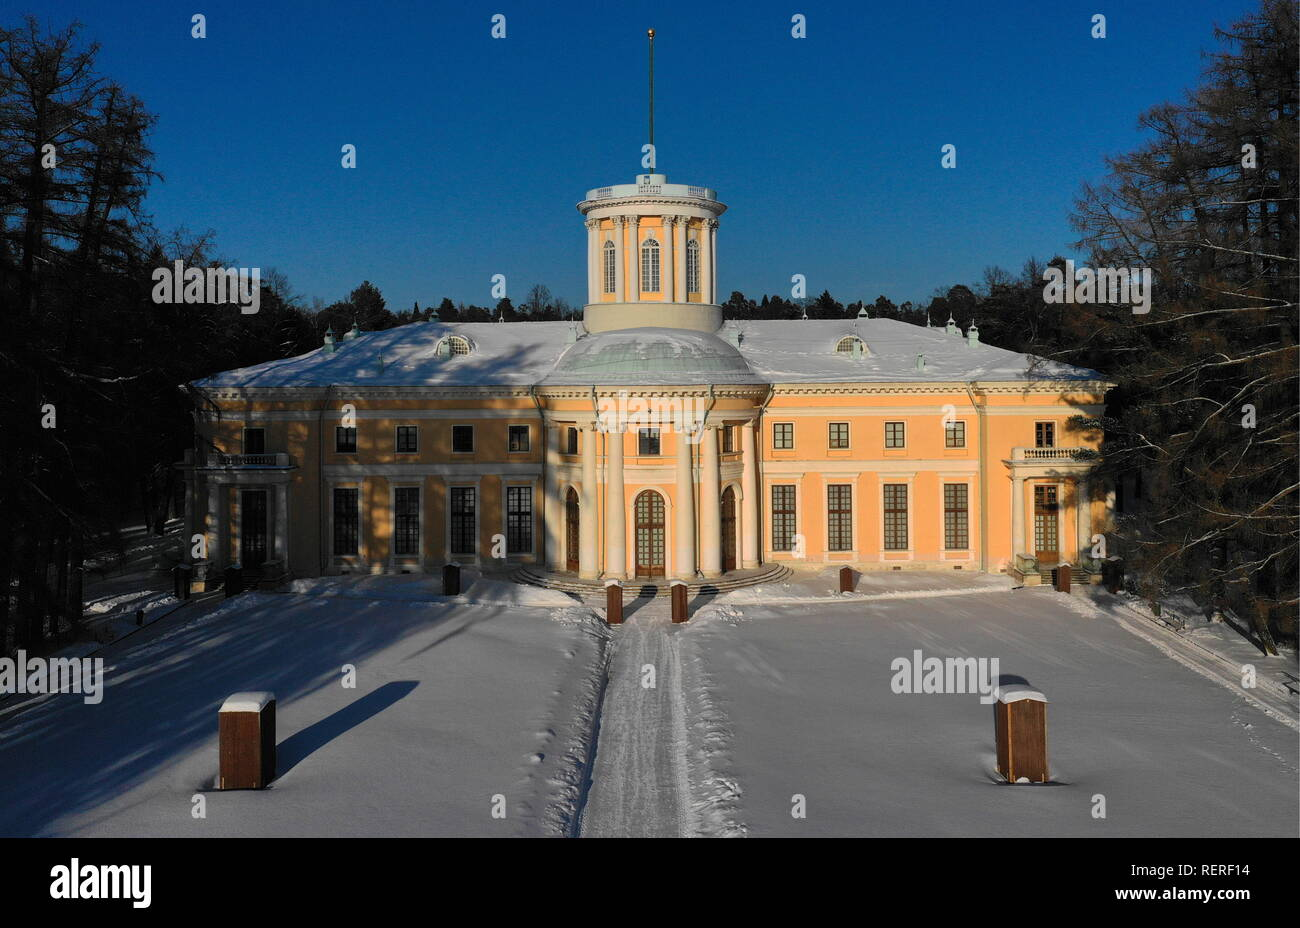 Russia  22nd Jan, 2019  MOSCOW REGION, RUSSIA - JANUARY 22, 2019: A